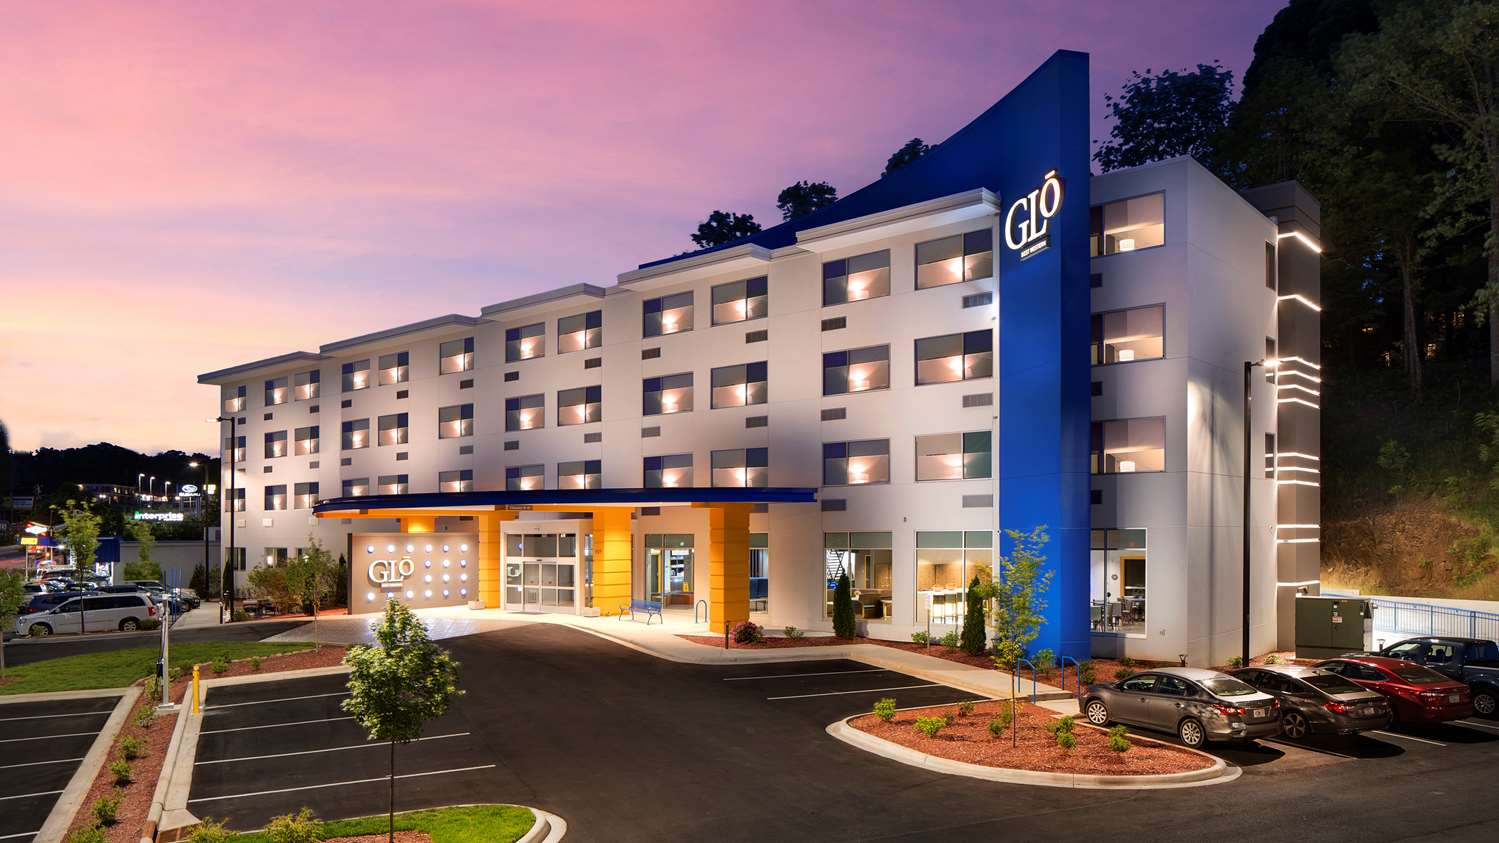 GLo Best Western Asheville Hotel, NC - See Discounts Downtown Asheville Hotels Map on downtown charlotte hotels map, downtown chicago hotels map, downtown cleveland hotels map, downtown baltimore hotels map, asheville nc hotel map, downtown charlotte convention center map, downtown houston hotels map, downtown charlotte restaurants and bars, downtown pittsburgh hotels map, downtown cincinnati hotels map, downtown myrtle beach hotels map, downtown phoenix hotels map, downtown savannah hotels map, amsterdam downtown hotel map, asheville airport map, asheville high school campus map, asheville beer map, downtown des moines hotels map, downtown grand las vegas map, asheville nc street map,